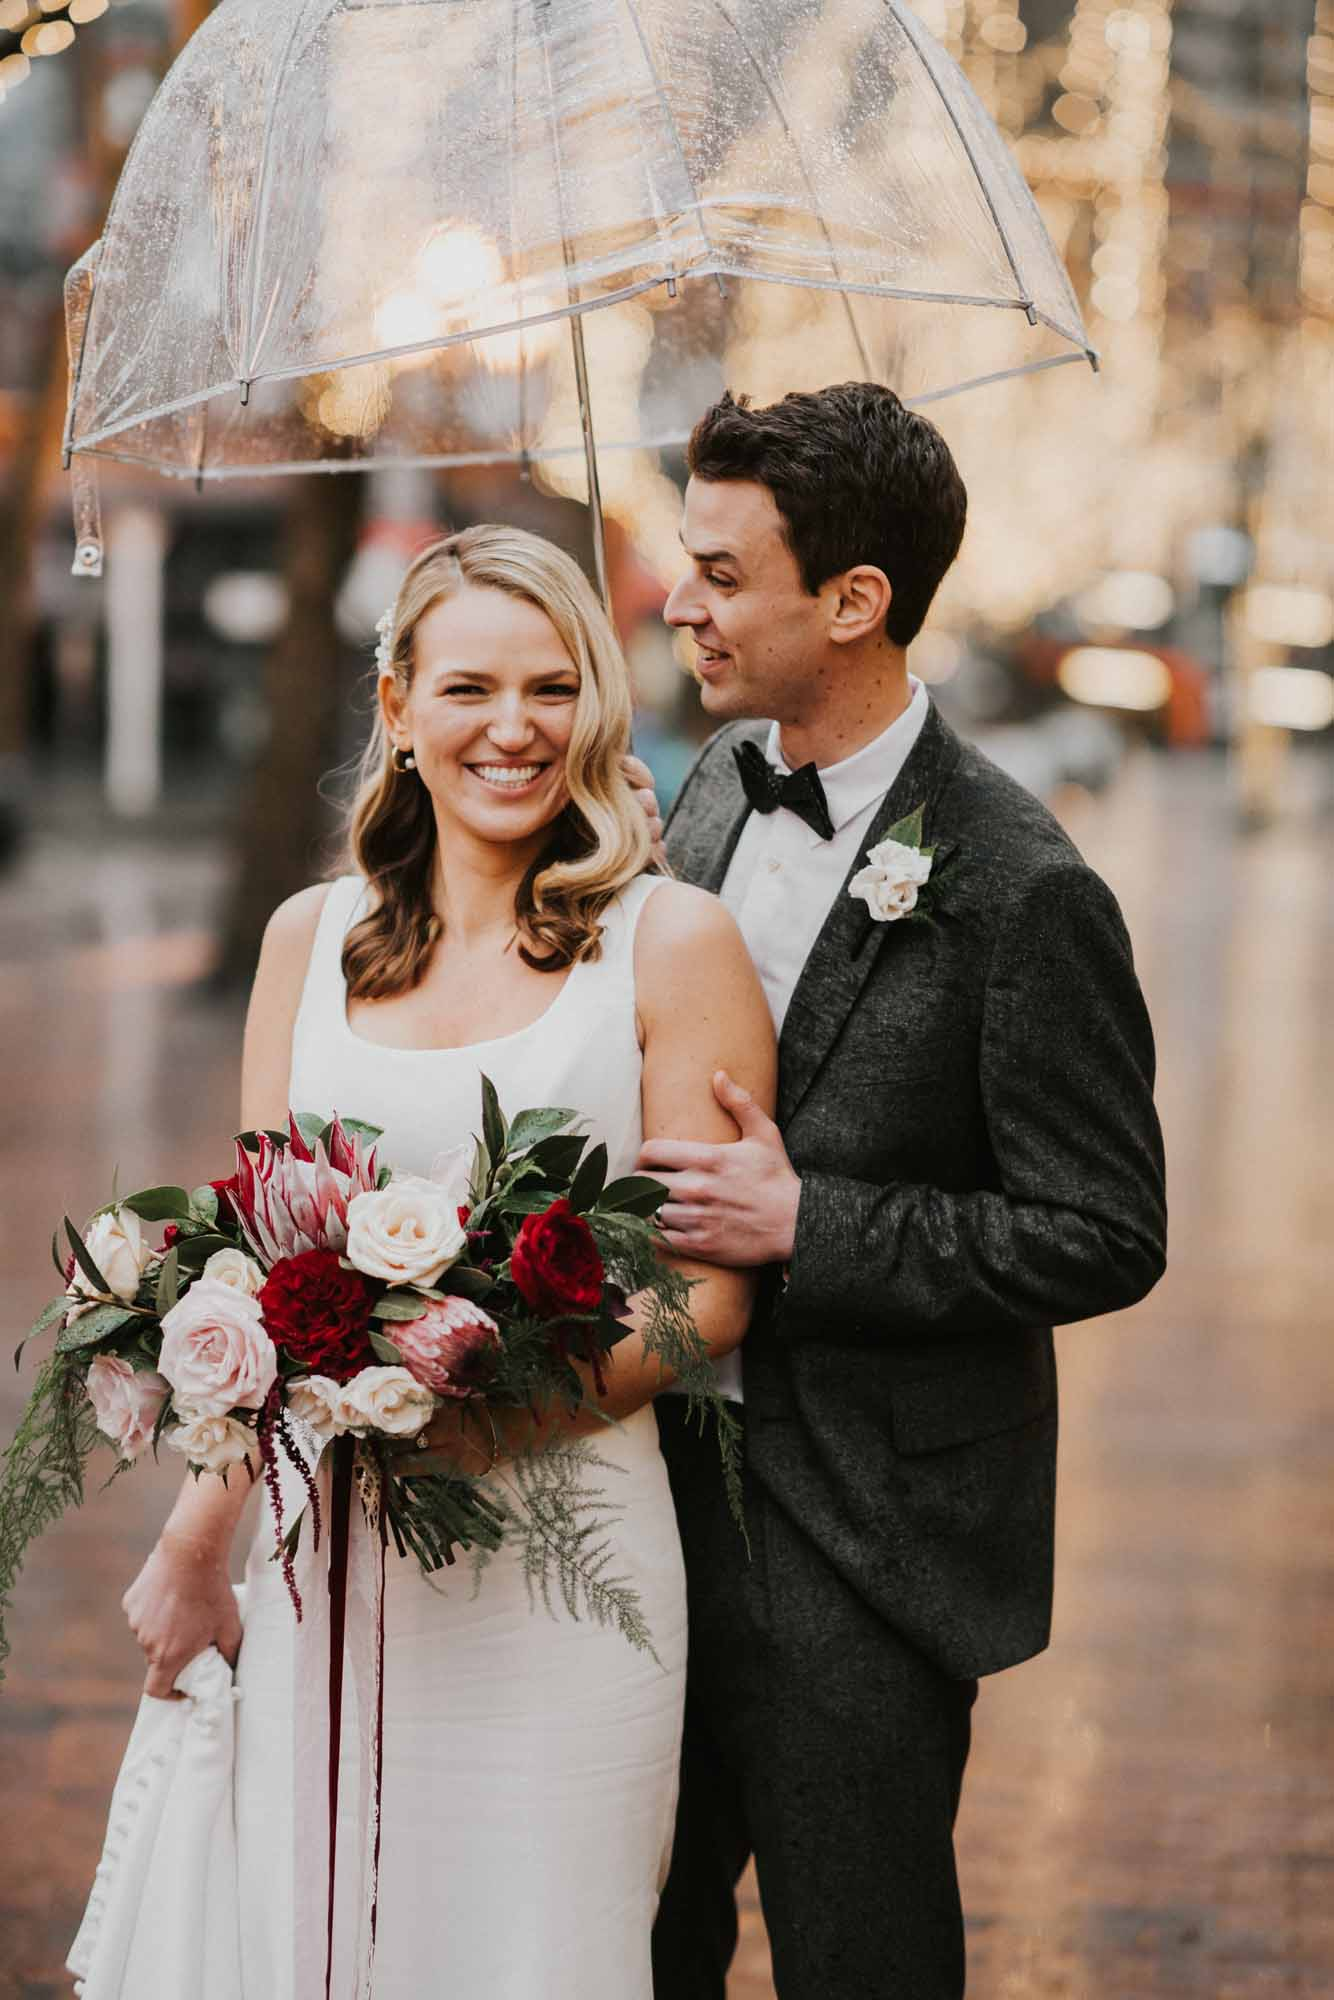 bride and groom under umbrella with wedding bouquet